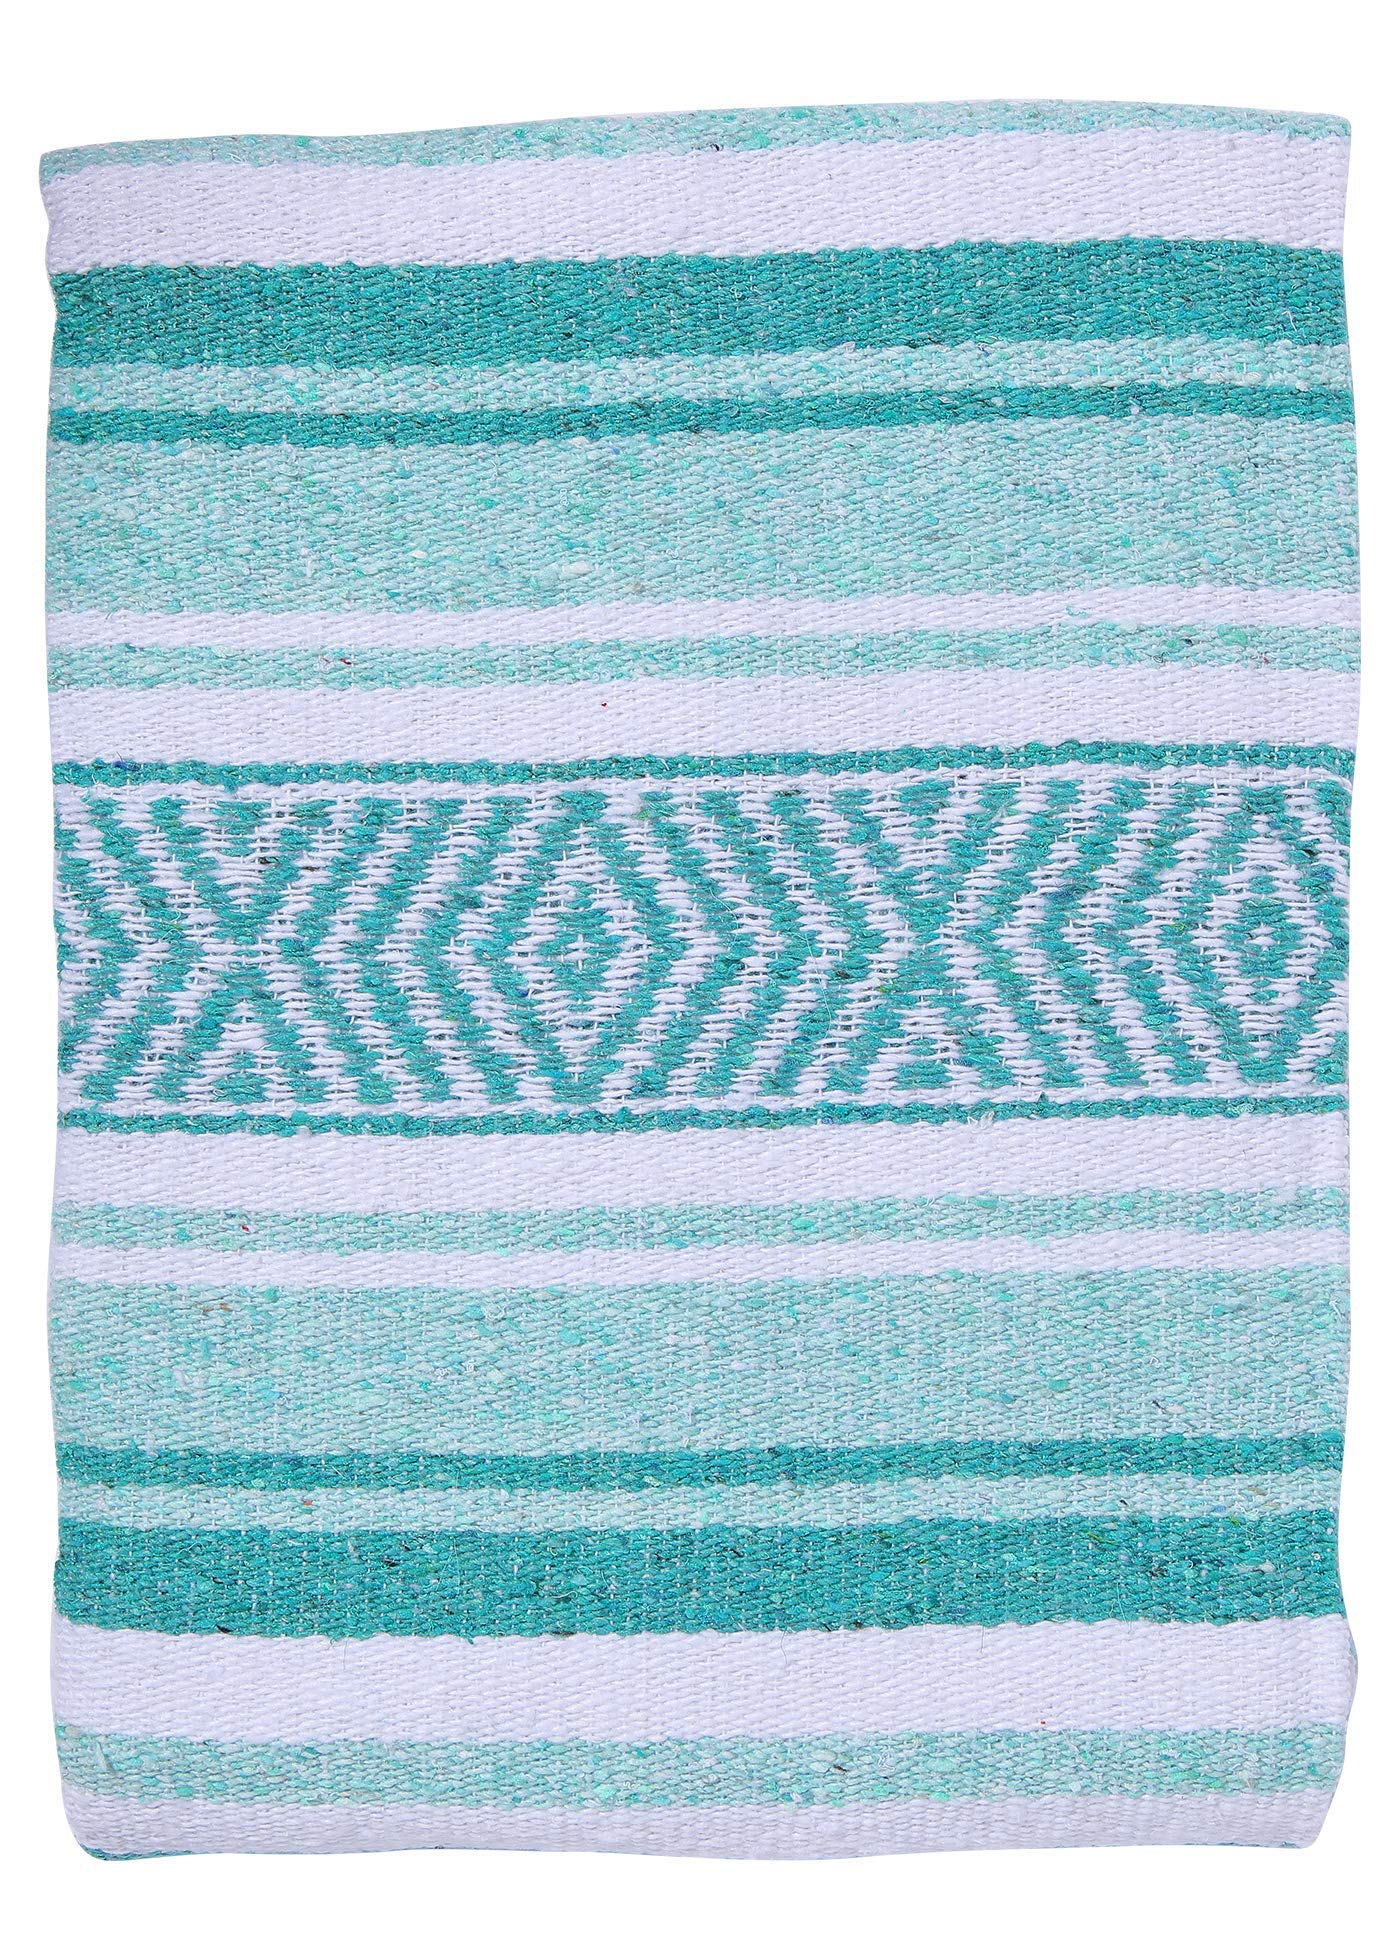 El Paso Designs Mexican Yoga Blanket Colorful 51in x 74in Studio Mexican Falsa Blanket Ideal for Yoga, Camping, Picnic, Beach Blanket, Bedding, Home Decor Soft Woven (Cancun) by El Paso Designs (Image #3)